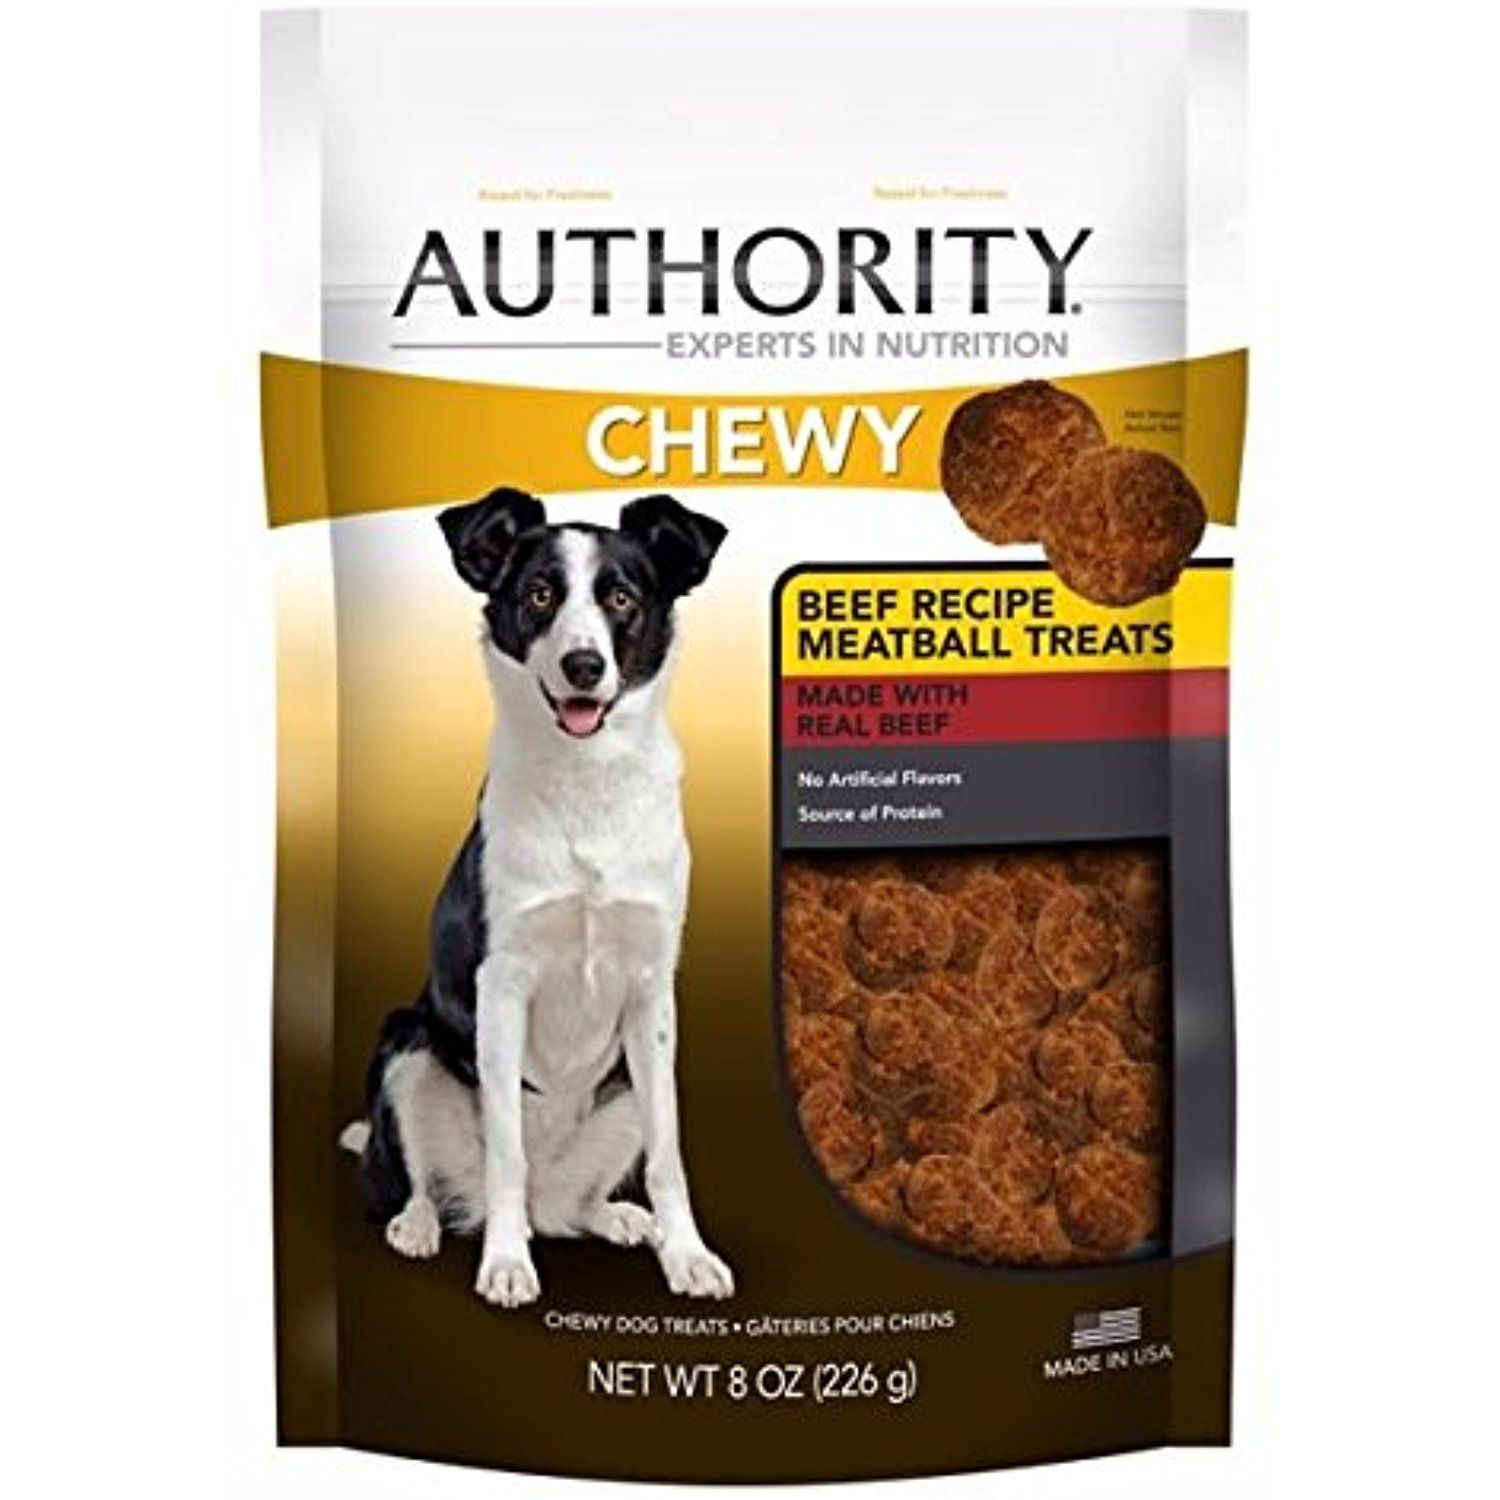 Authority Chewy Beef Recipe Meatball Dog Treats 8 Oz You Can